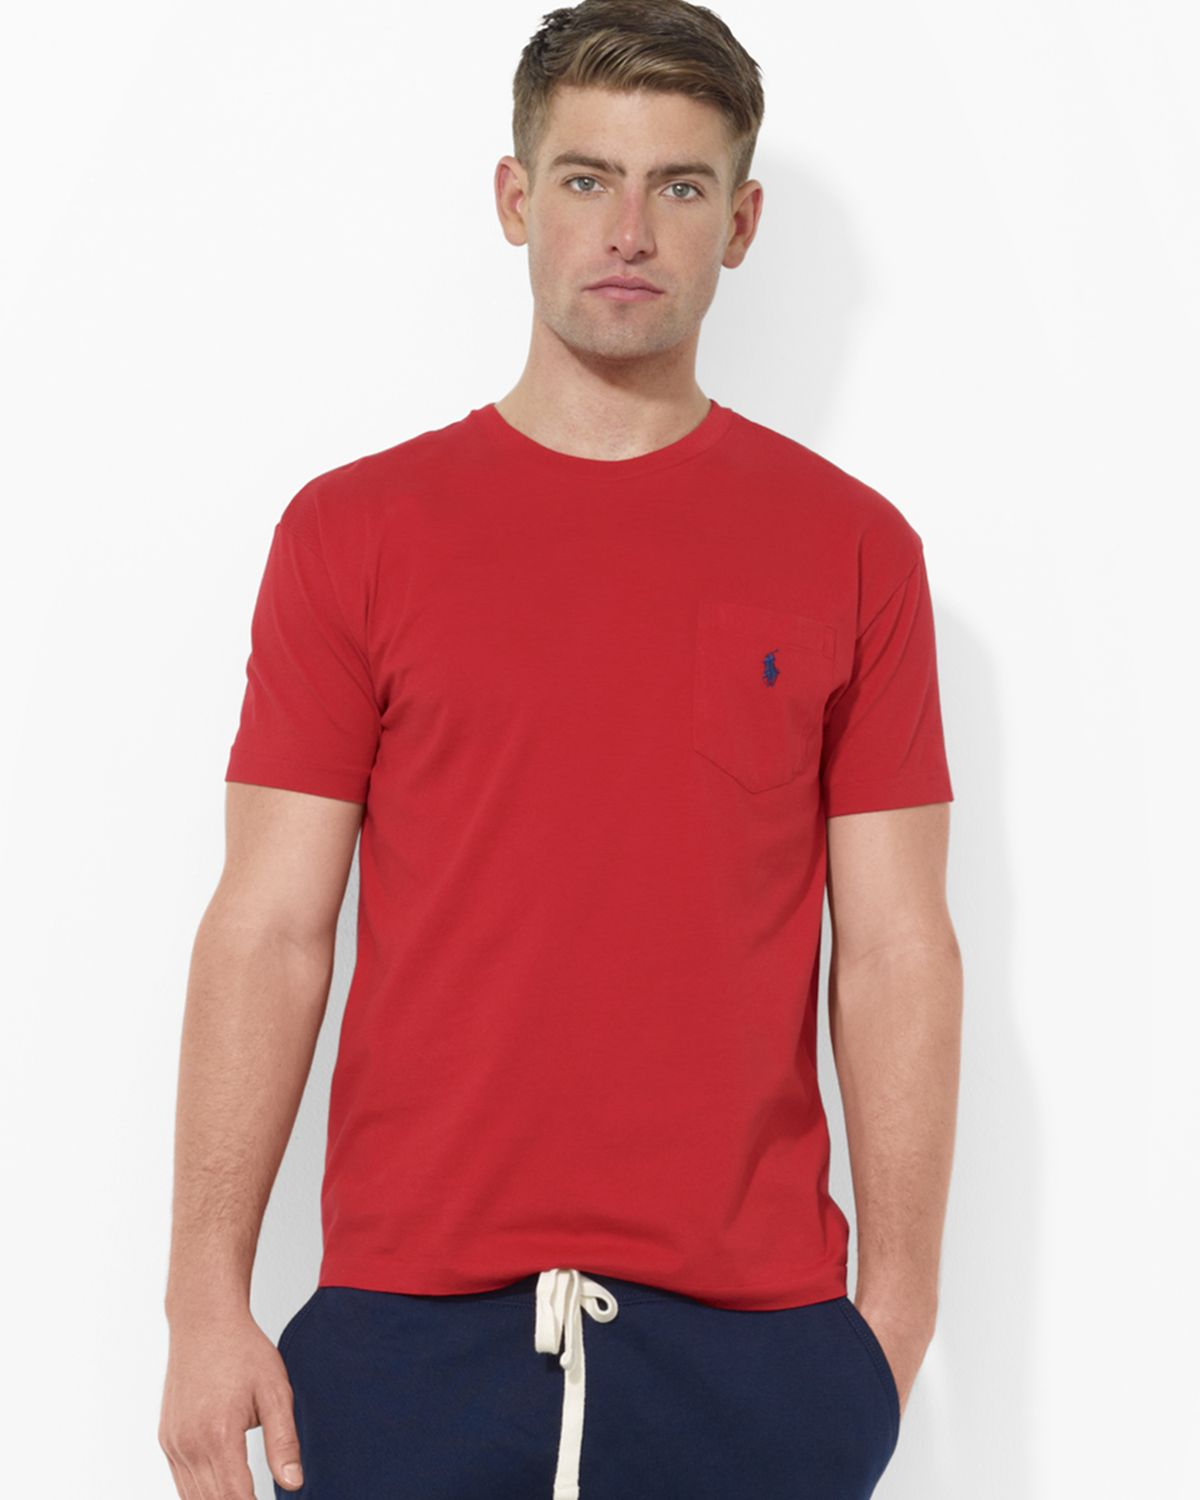 Ralph lauren polo classic fit short sleeved cotton pocket for Polo t shirts with pocket online